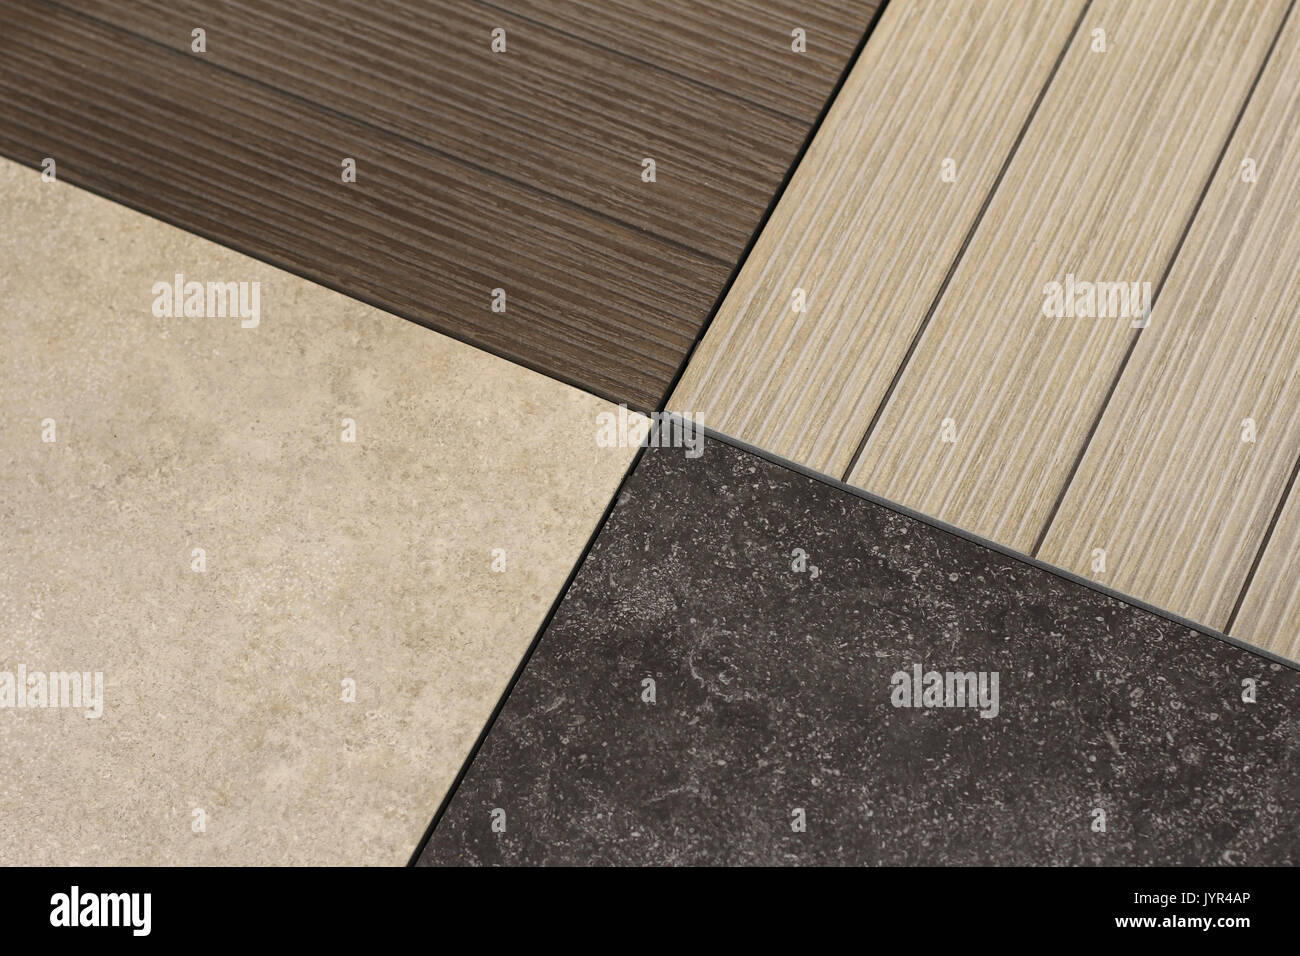 Material samples detail for room interior floors - Stock Image